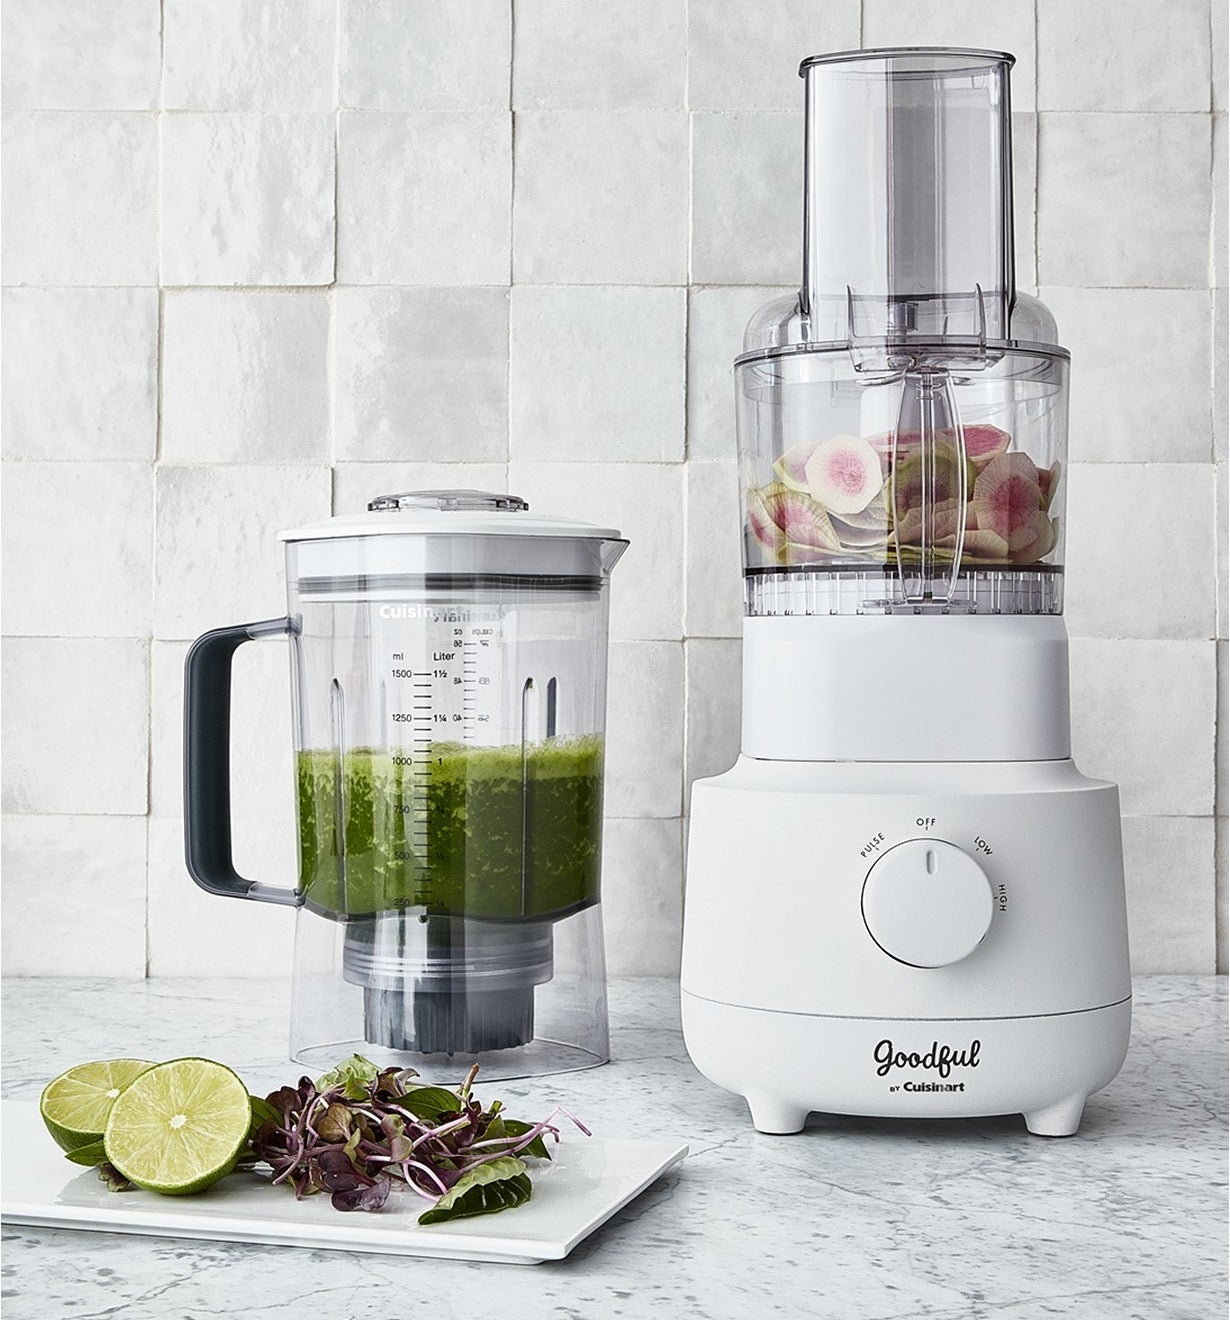 The white food processor and the blender next to it